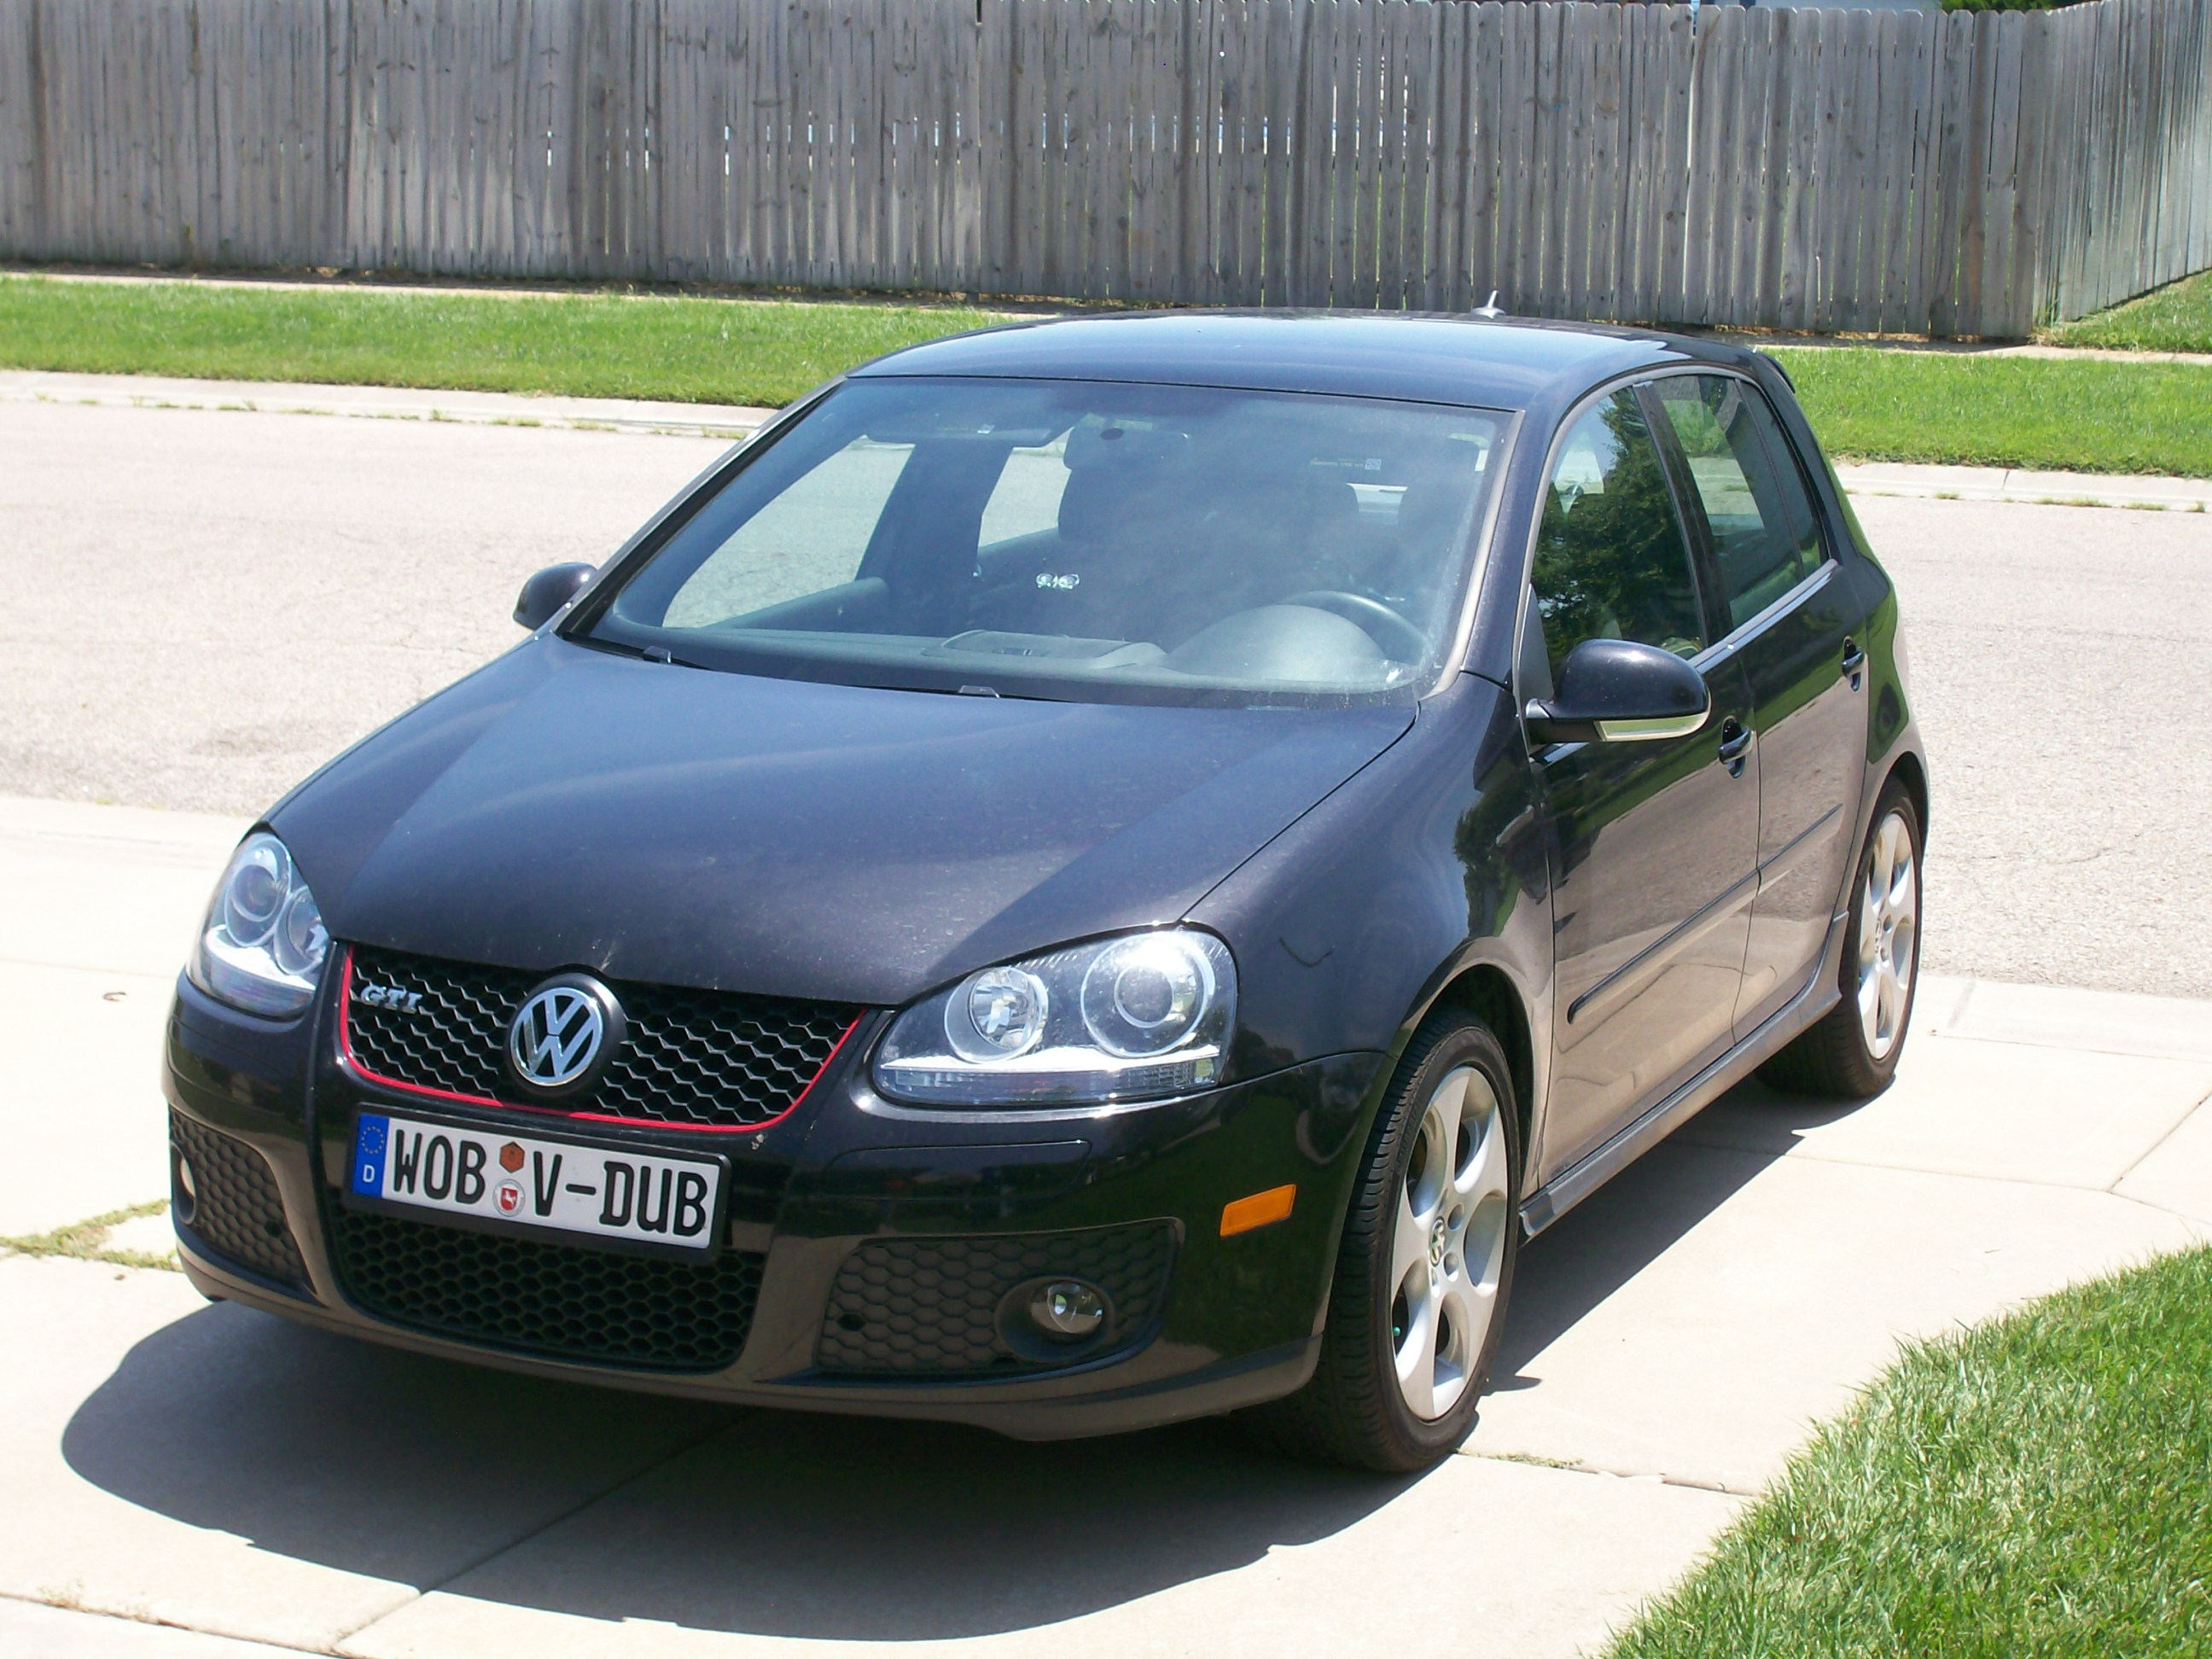 2008 Volkswagen Gti #8